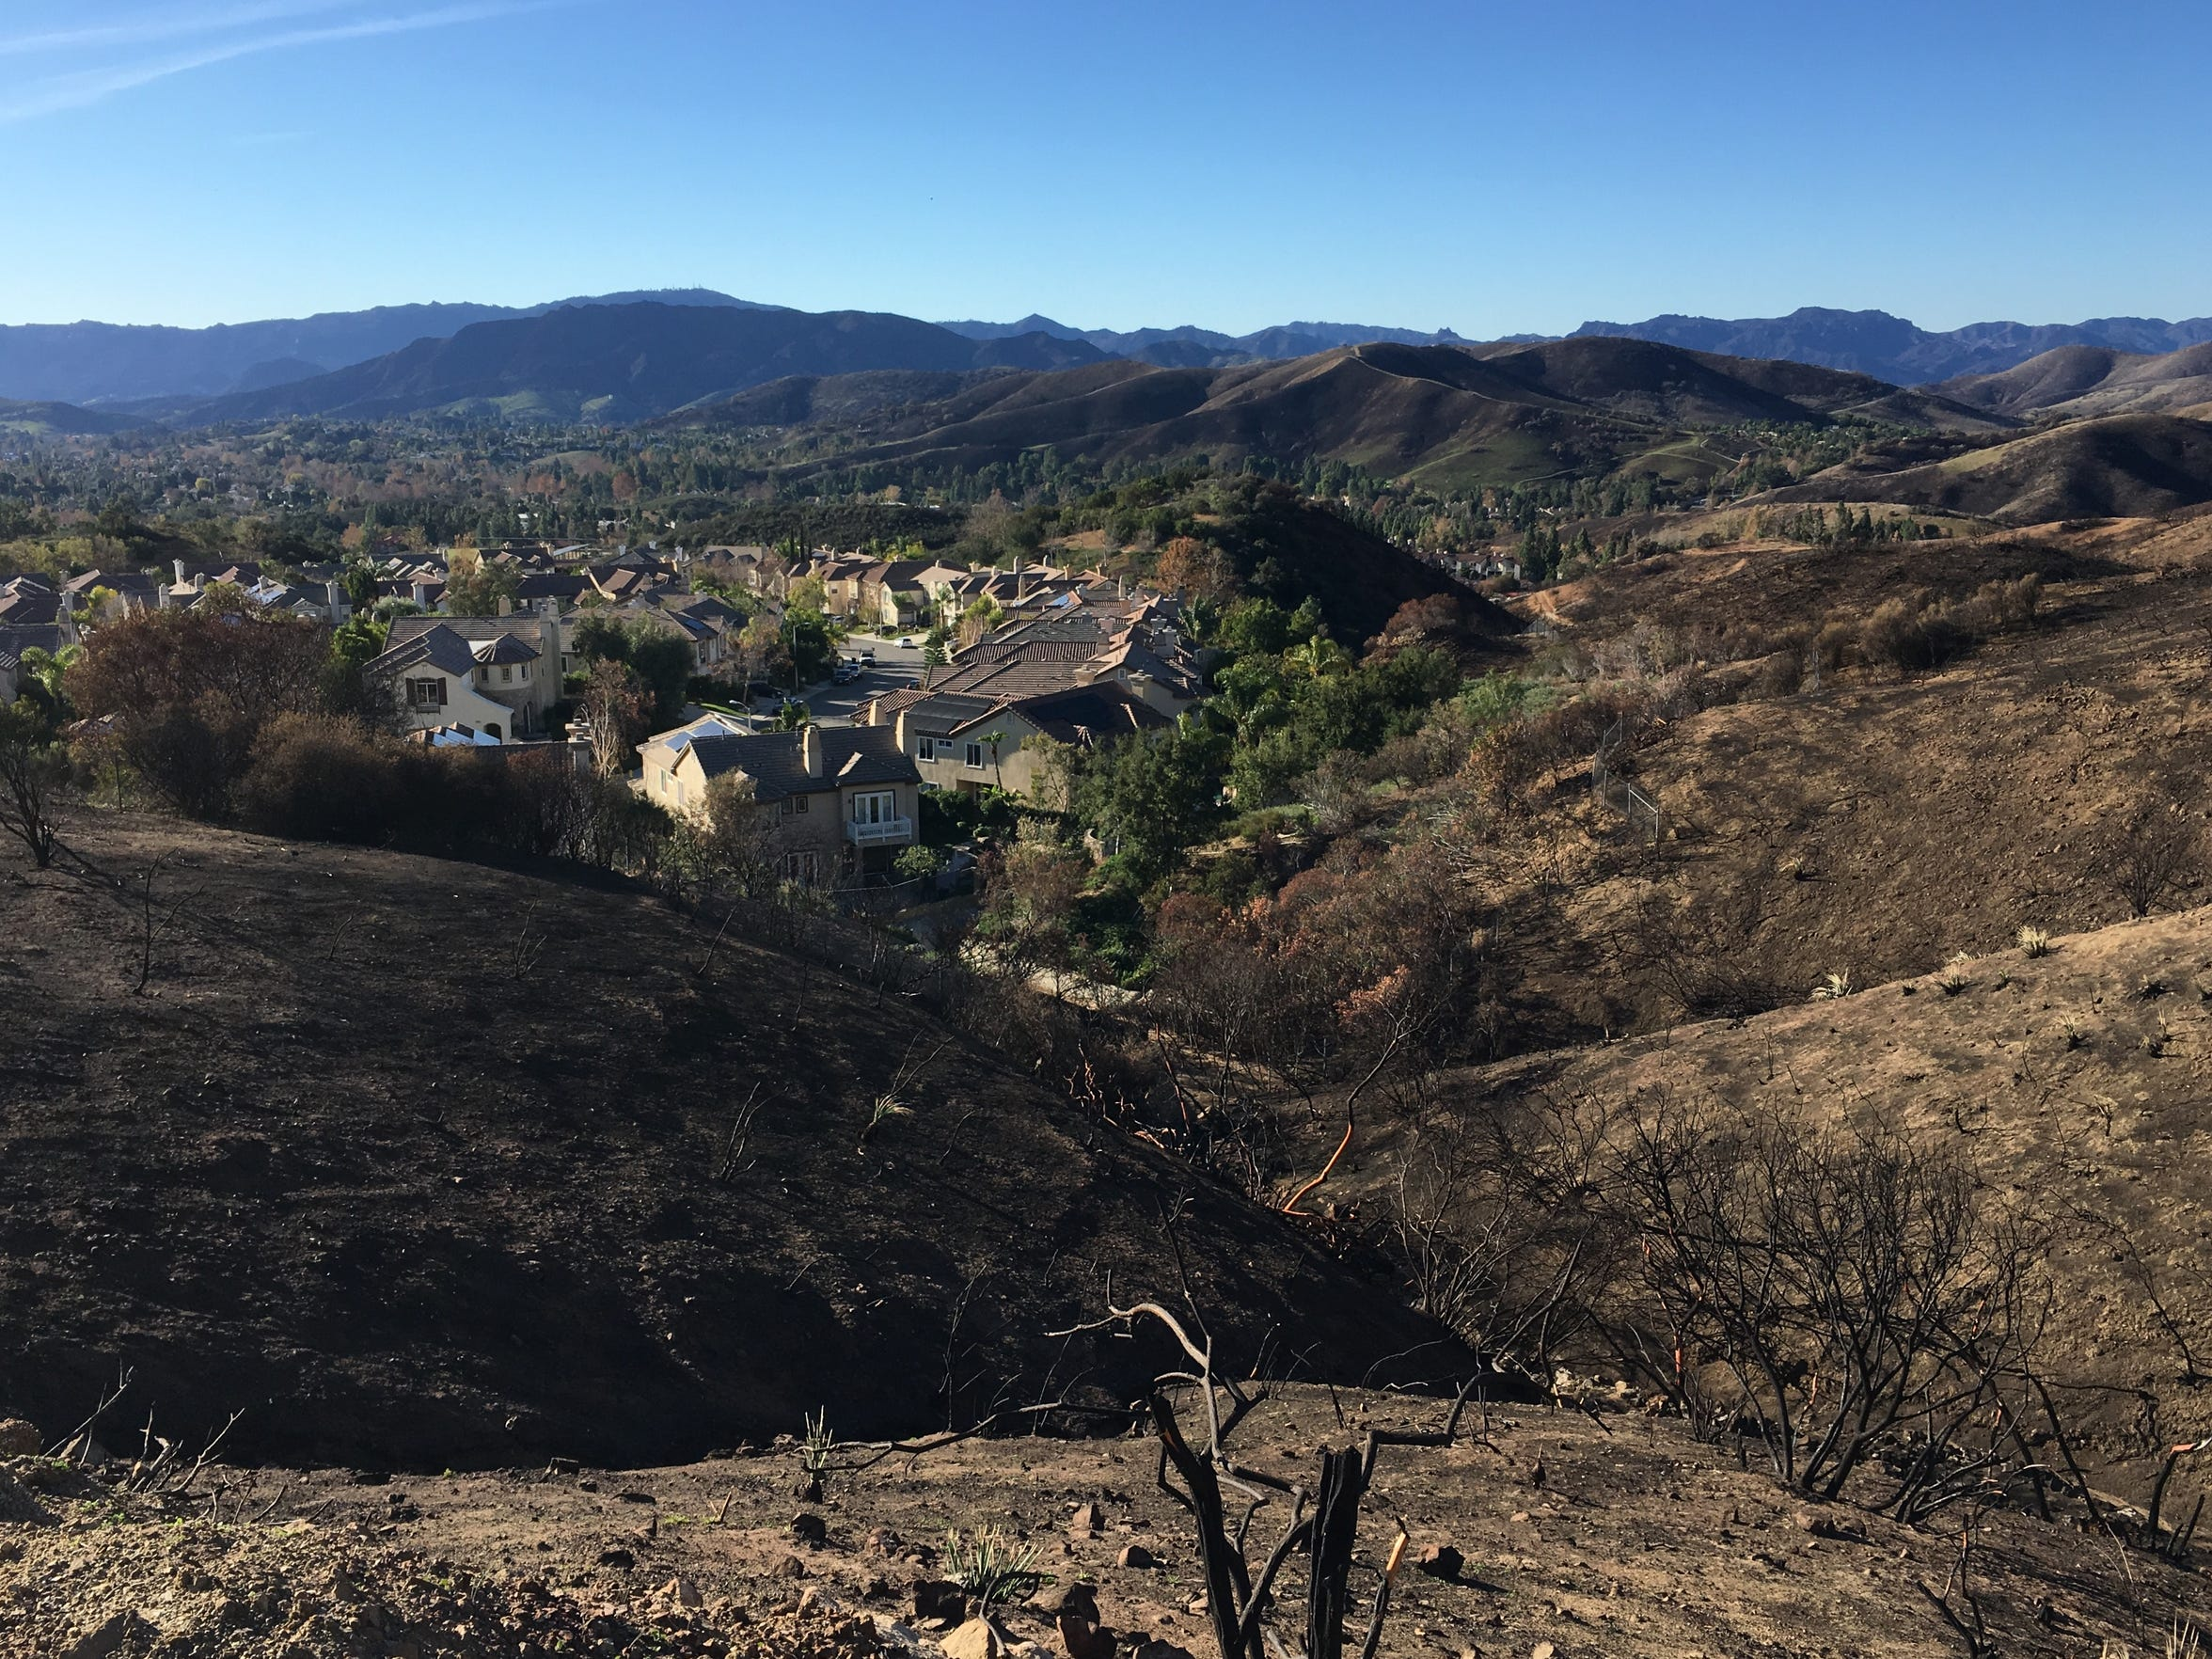 Oak Park homes sit below hillsides burned in the Woolsey Fire in November.